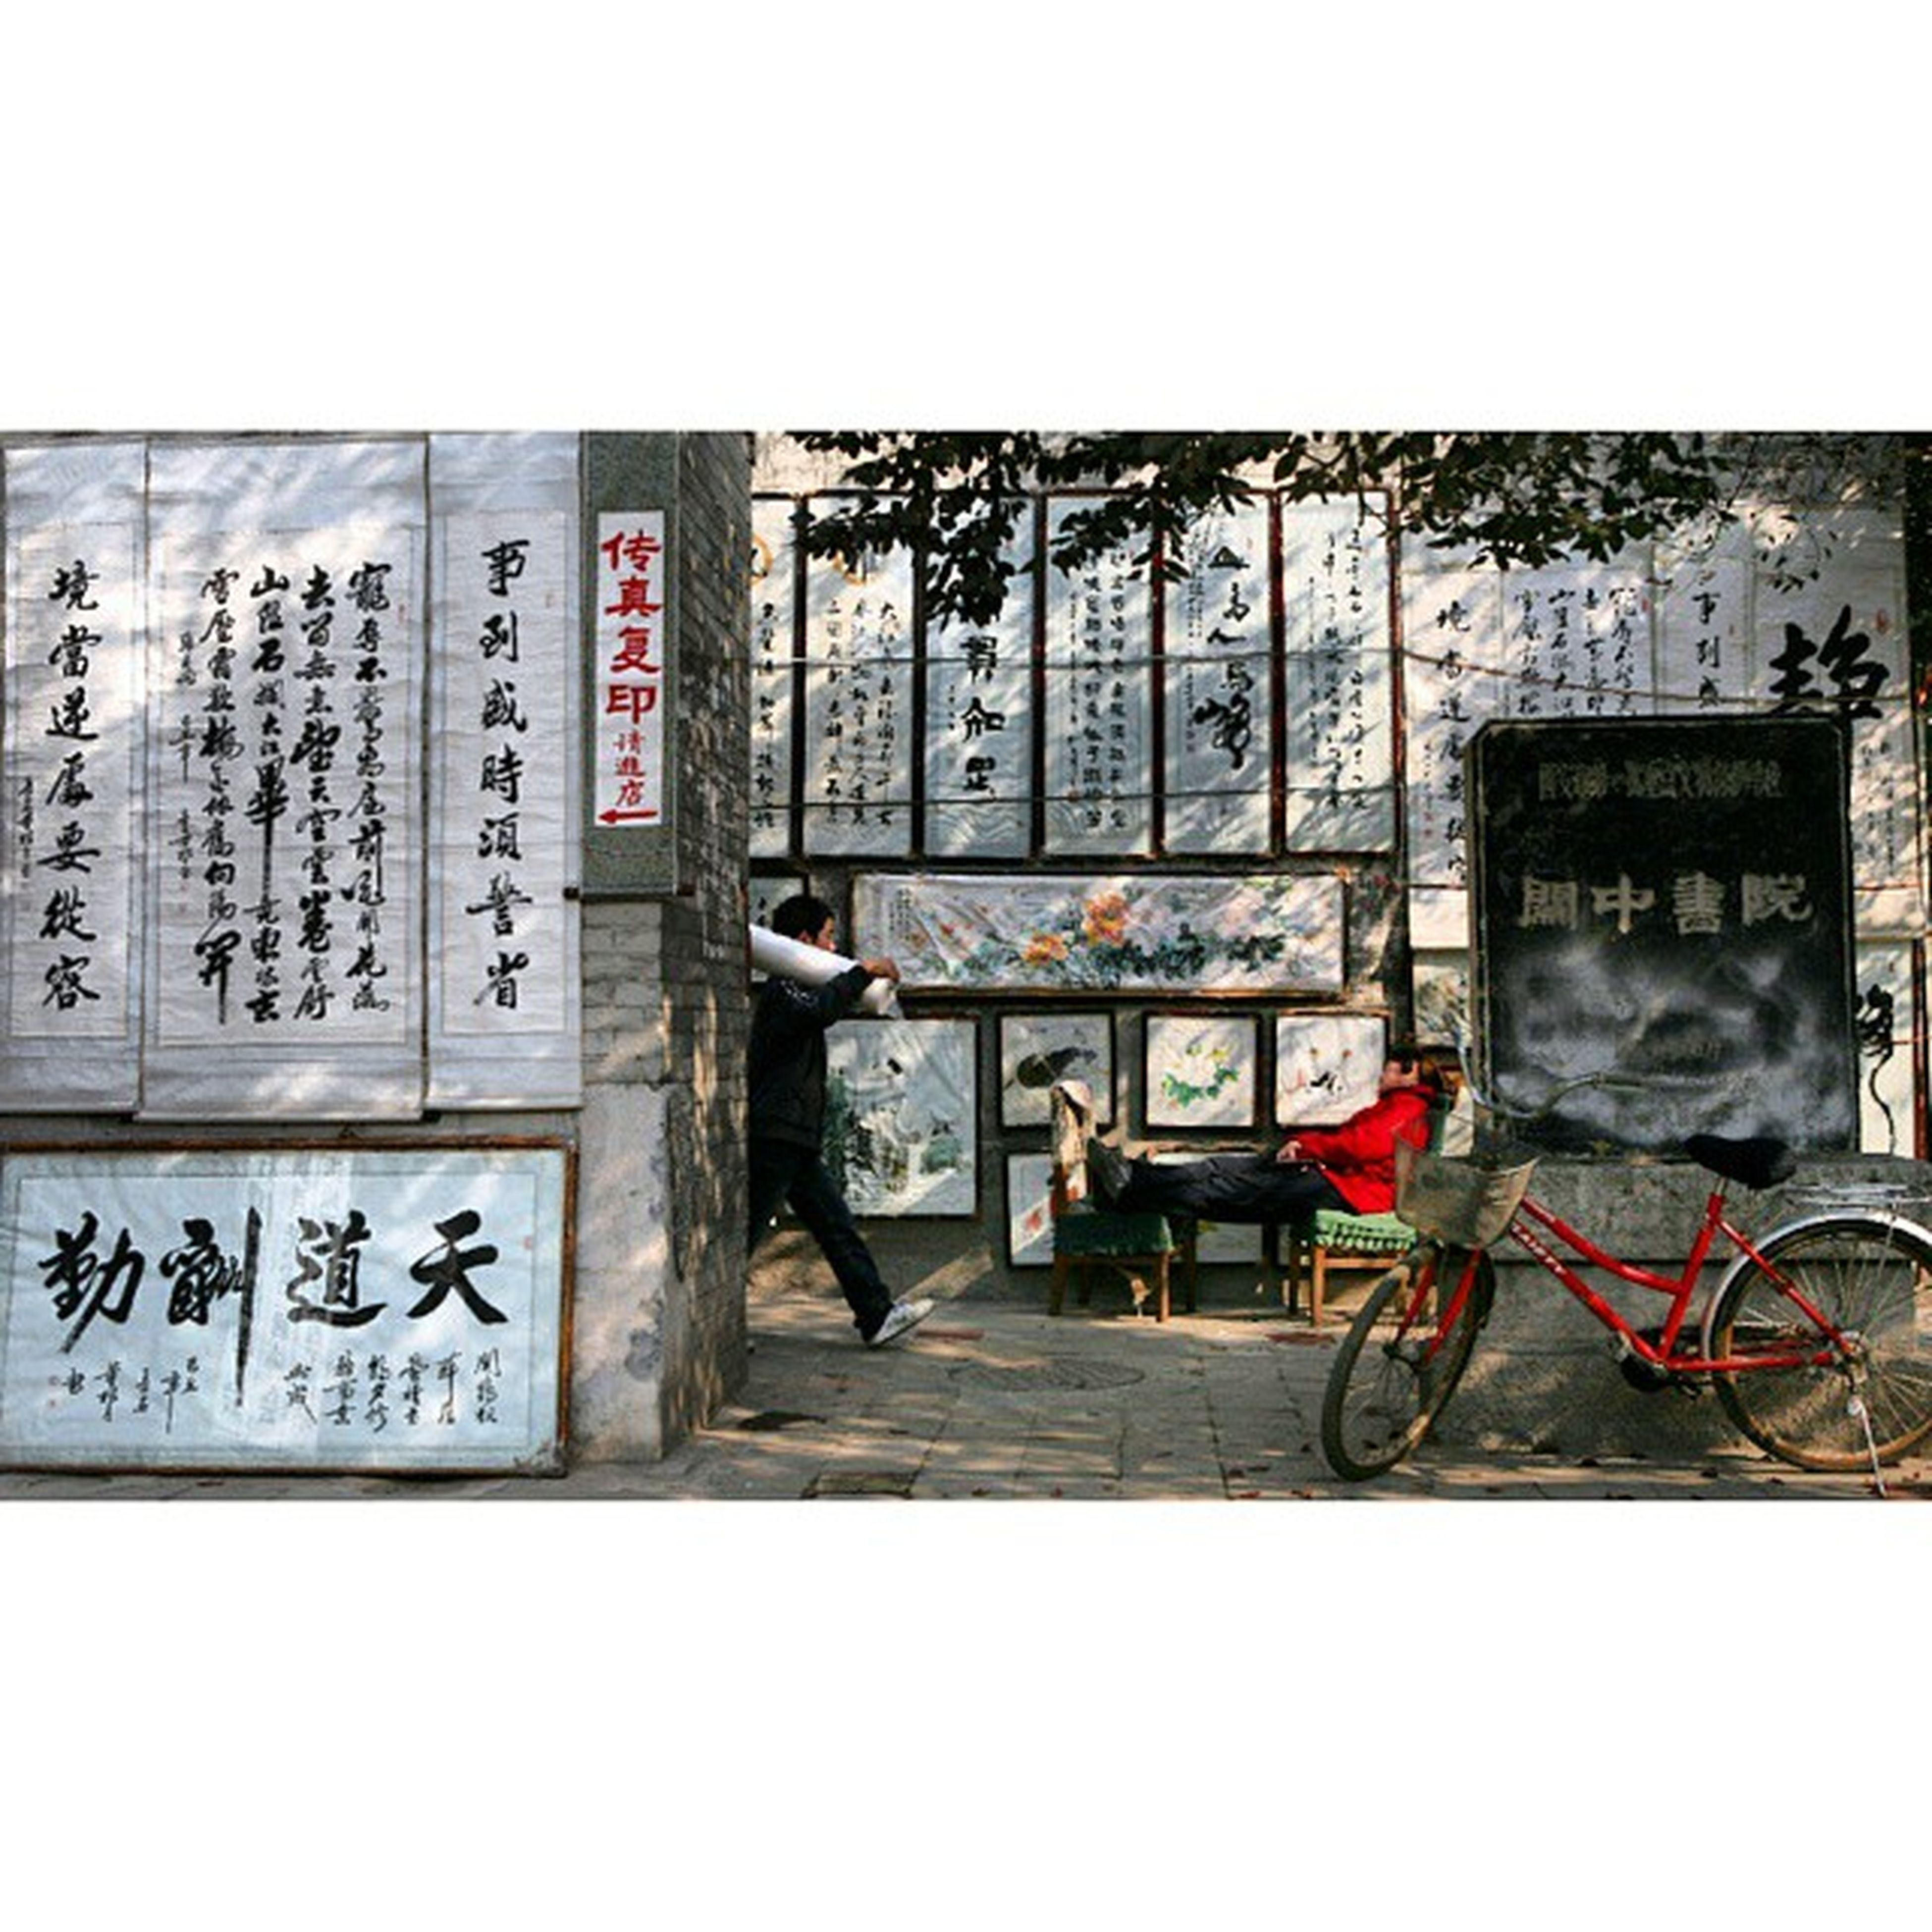 graffiti, architecture, built structure, bicycle, wall - building feature, building exterior, transfer print, auto post production filter, transportation, wall, text, western script, mode of transport, land vehicle, stationary, day, parked, building, window, door